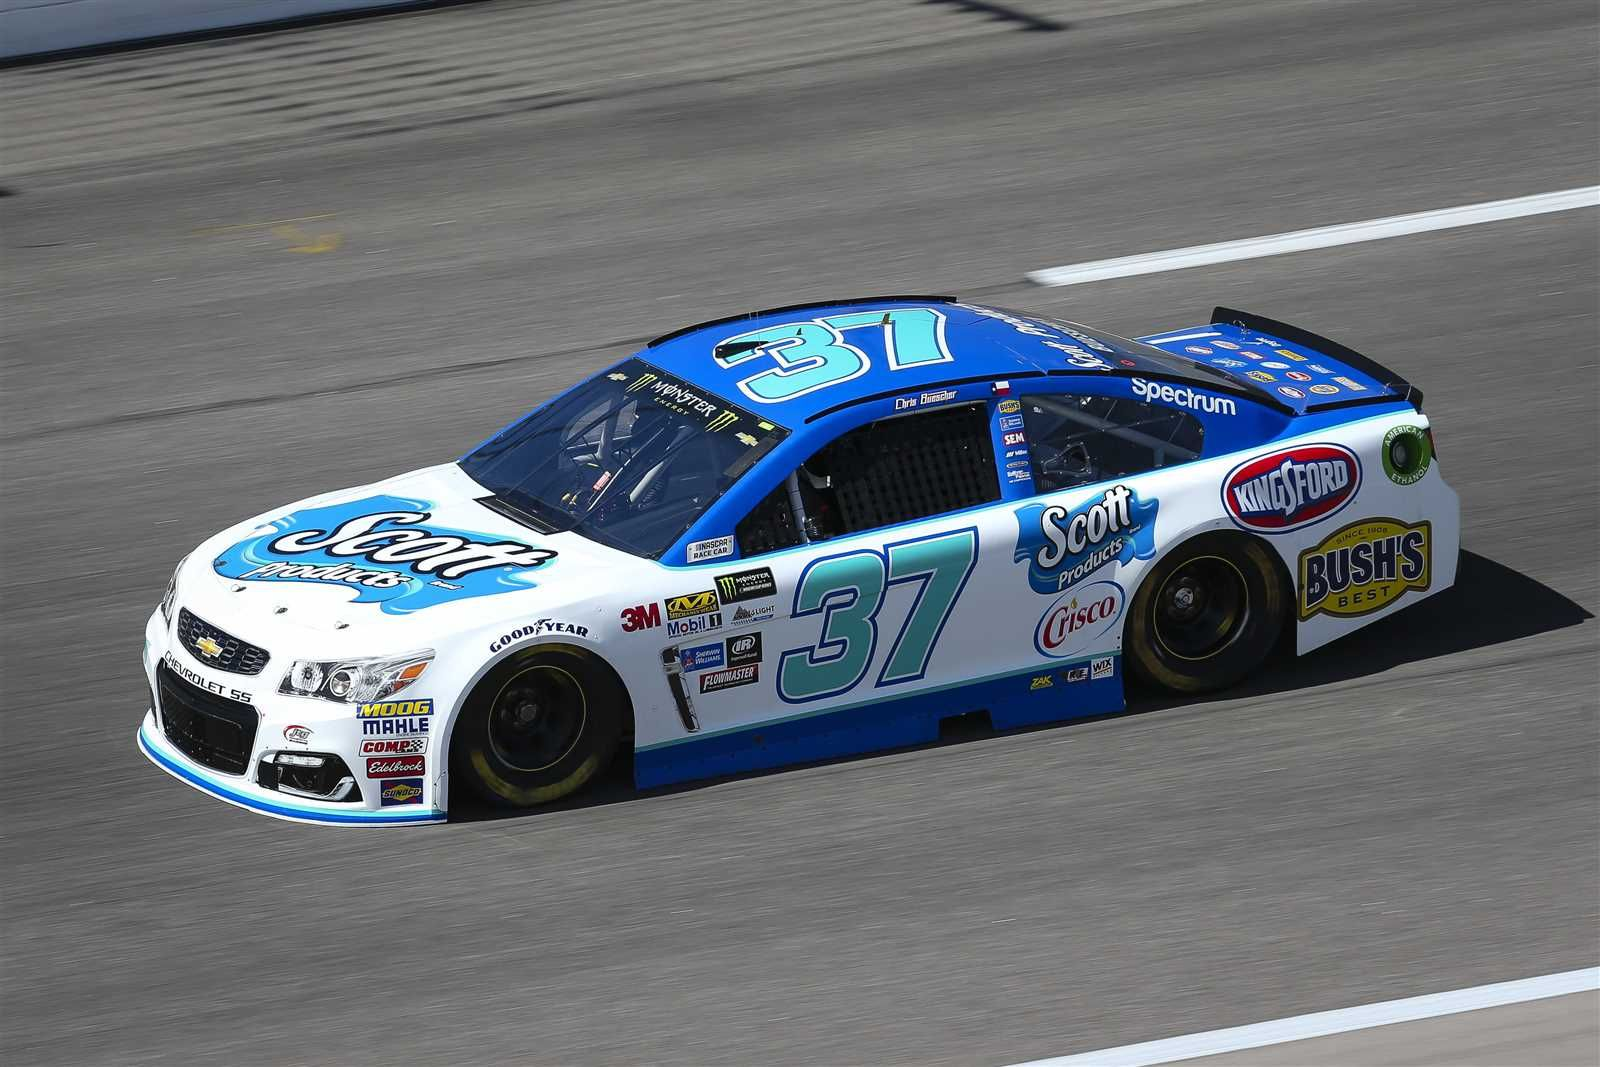 Go Bowling 400 Kansas May 13 2017 Chris Buescher Will Start 20th In The No 37 Jtg Daugherty Racing Chevrolet Crew Chief T Owens Spotter David